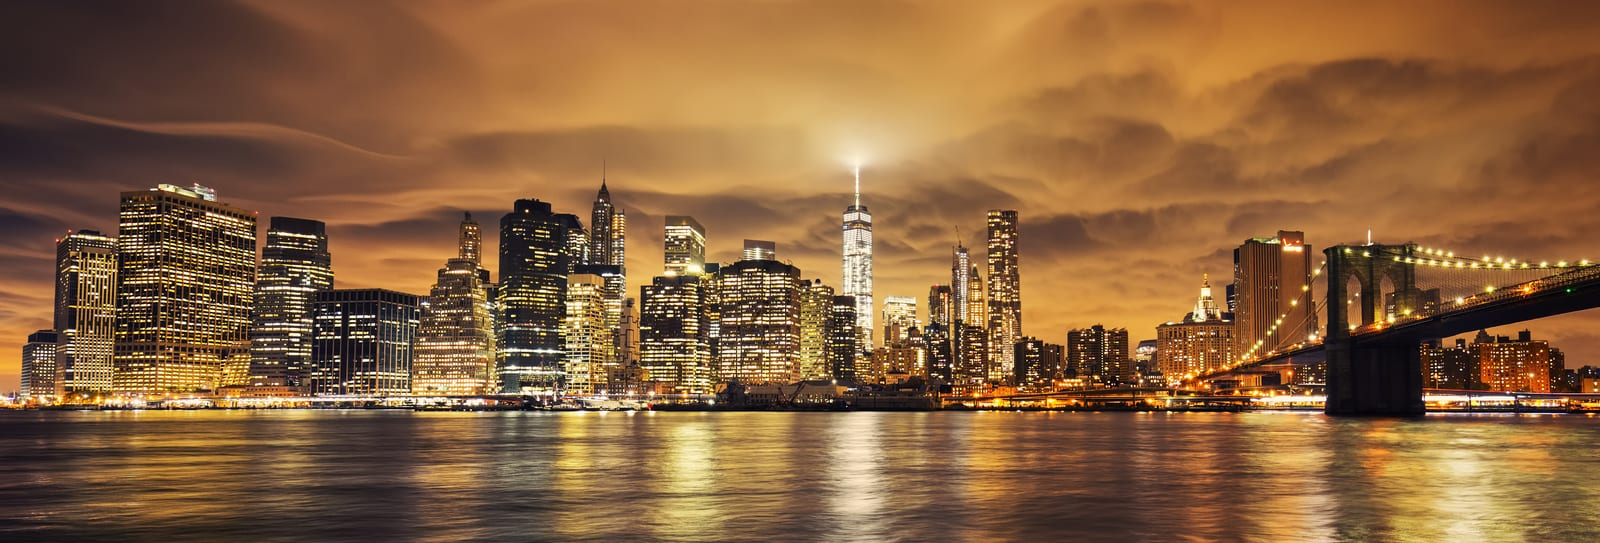 Midtown East	Manhattan, NY Private Investigator